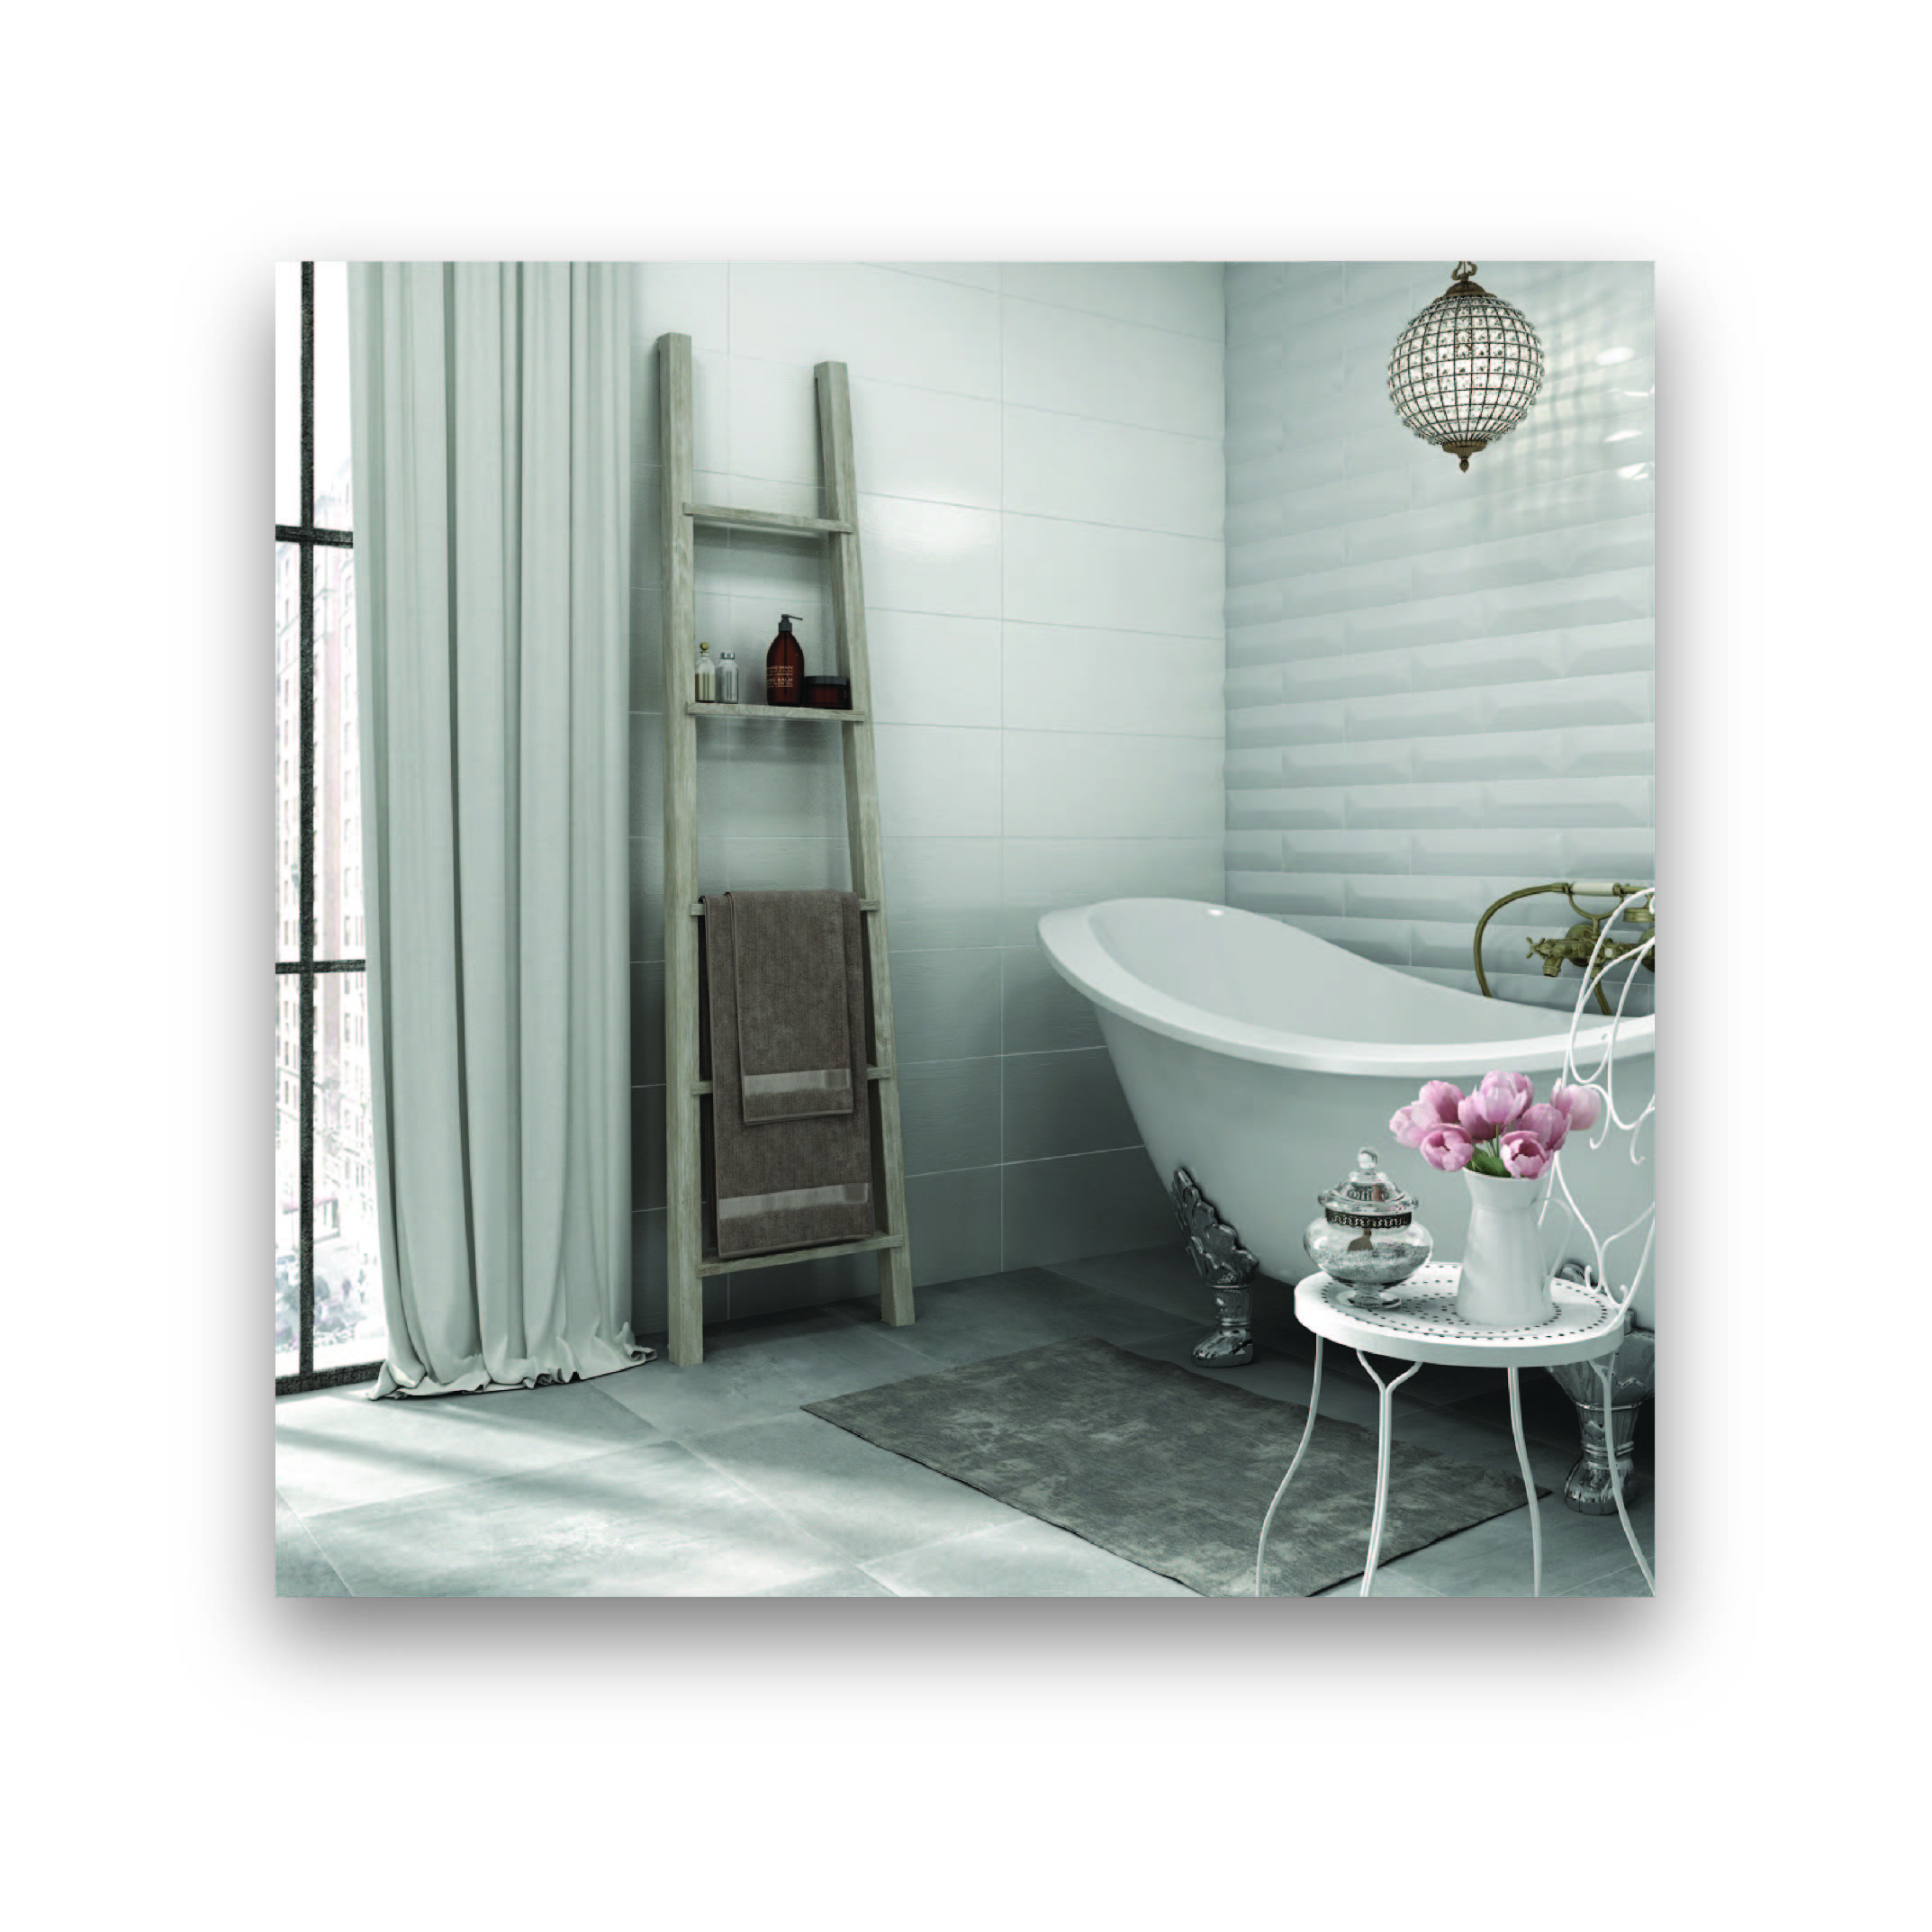 All Natural Stone Stock Material, All Natural Stone Stock Porcelain tile, Imagine